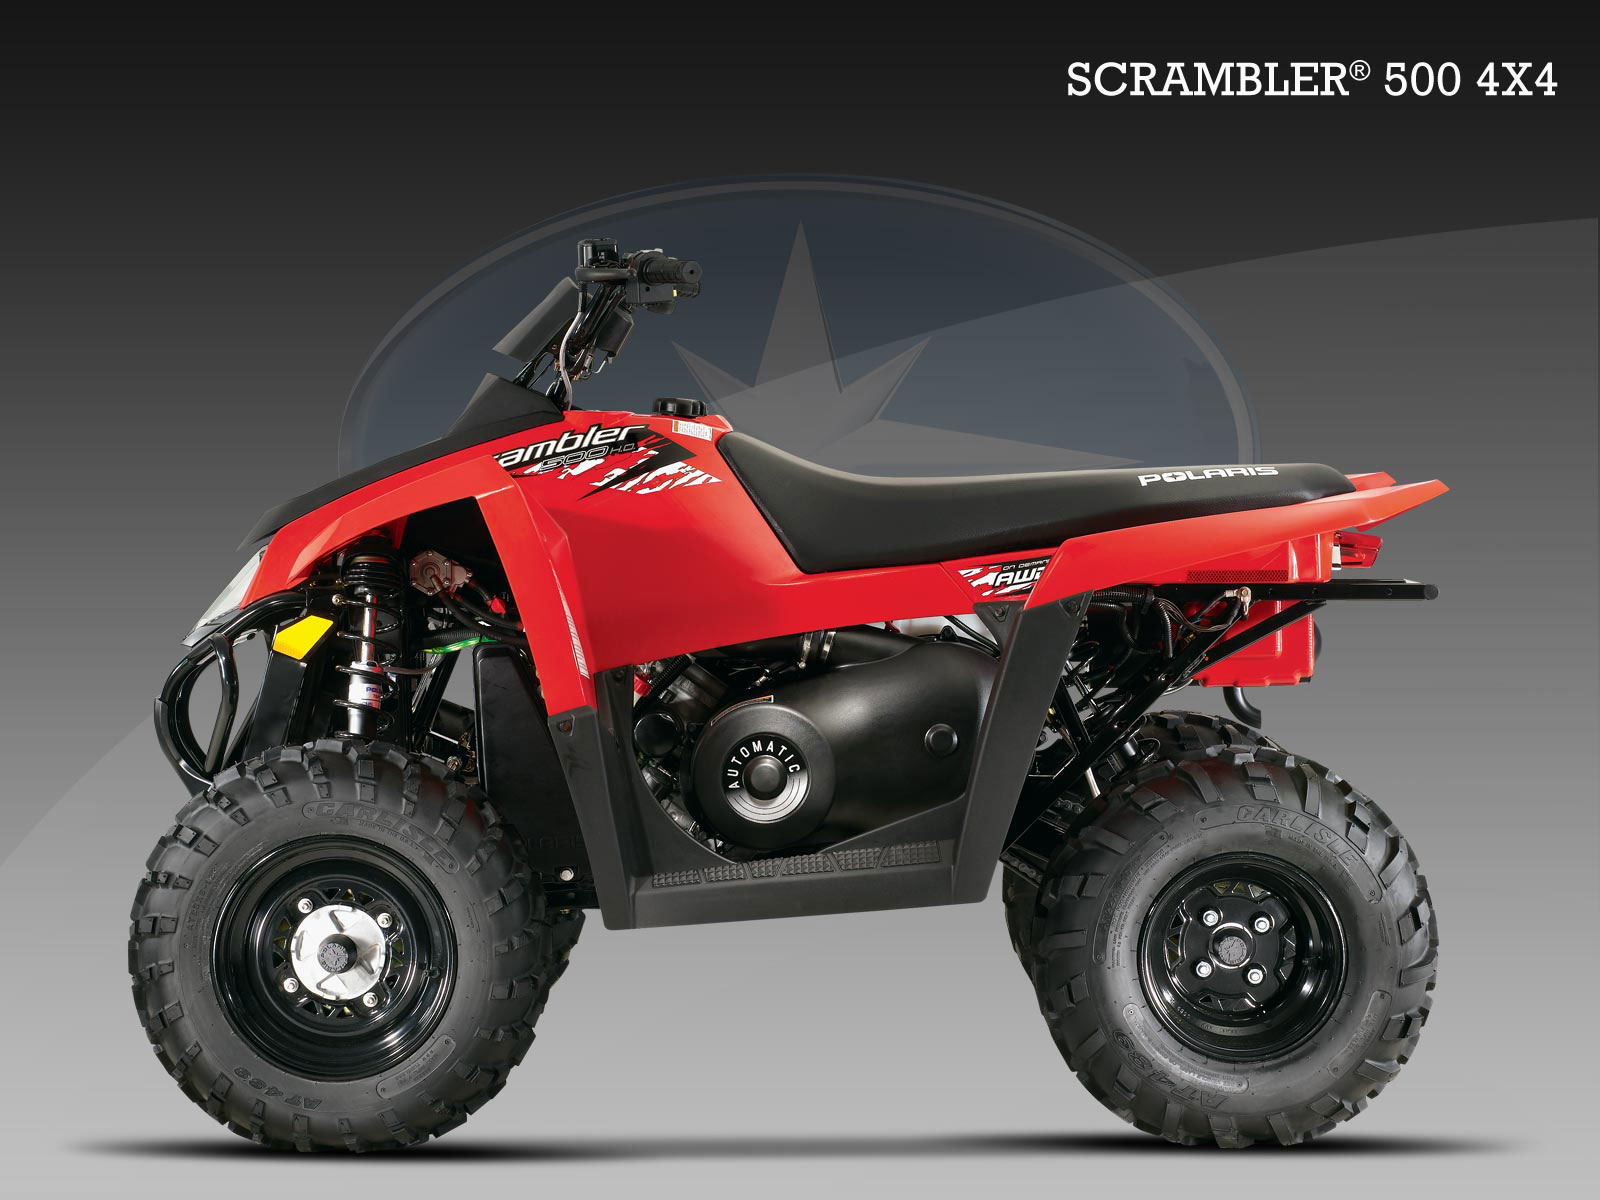 Polaris Scrambler 500 2008 images #121288